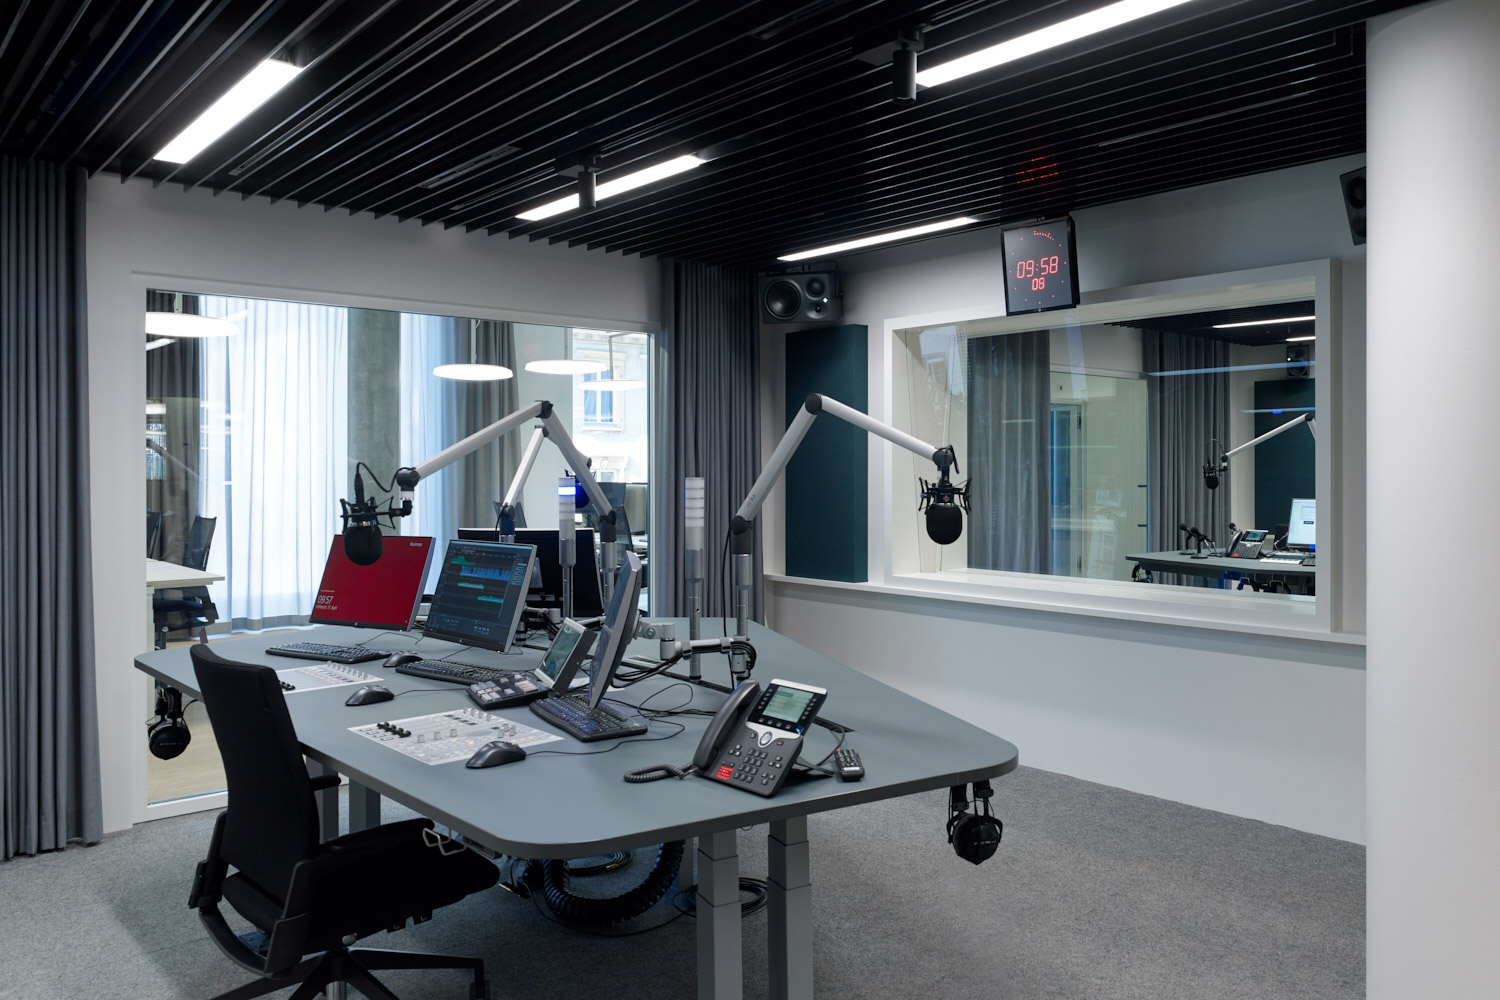 Schweizer Radio und Fernsehen broadcasting company relocated their Basel facilities and WSDG's services were retained to tune the acoustics of these rooms and ensure high-quality working areas for SRF. Broadcast room.